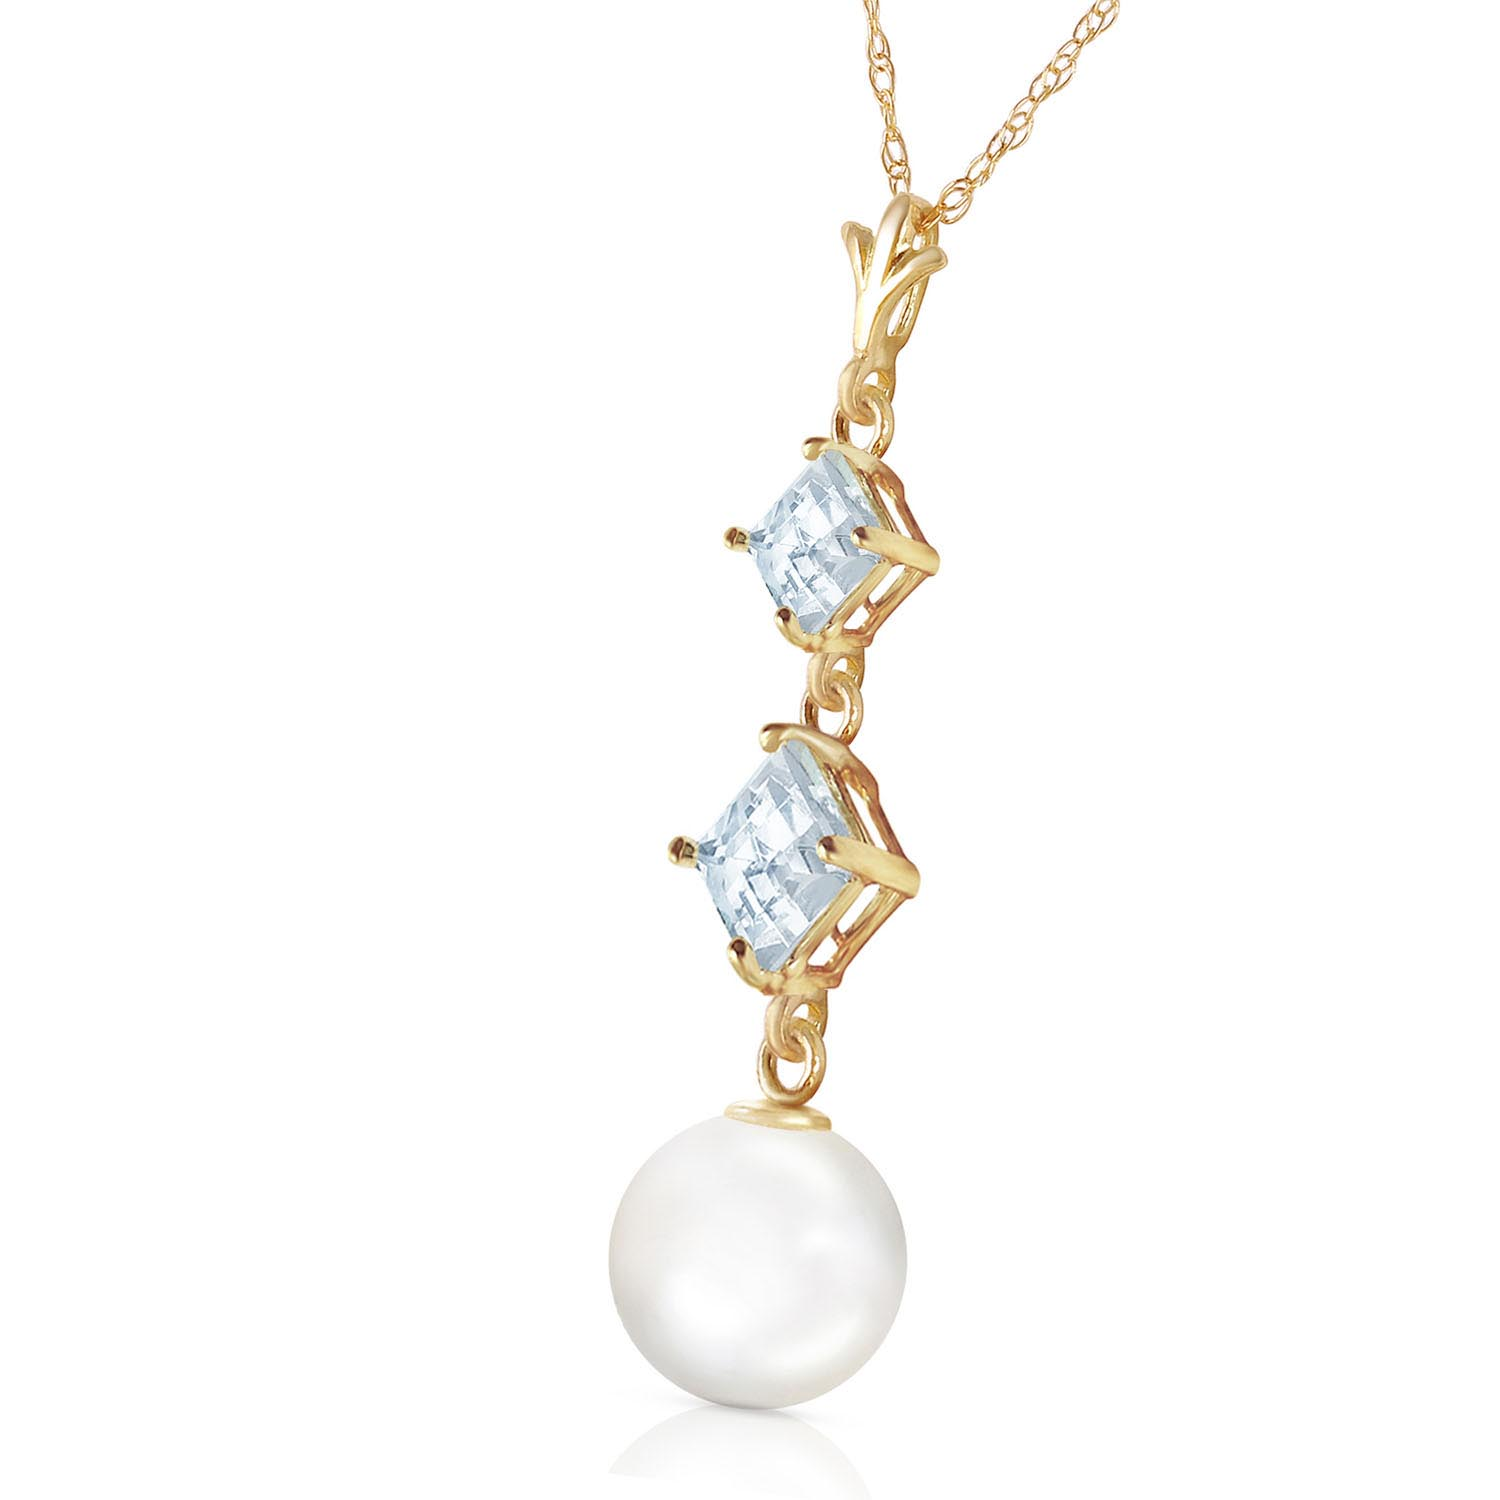 Pearl and Aquamarine Pendant Necklace 3.25ctw in 9ct Gold